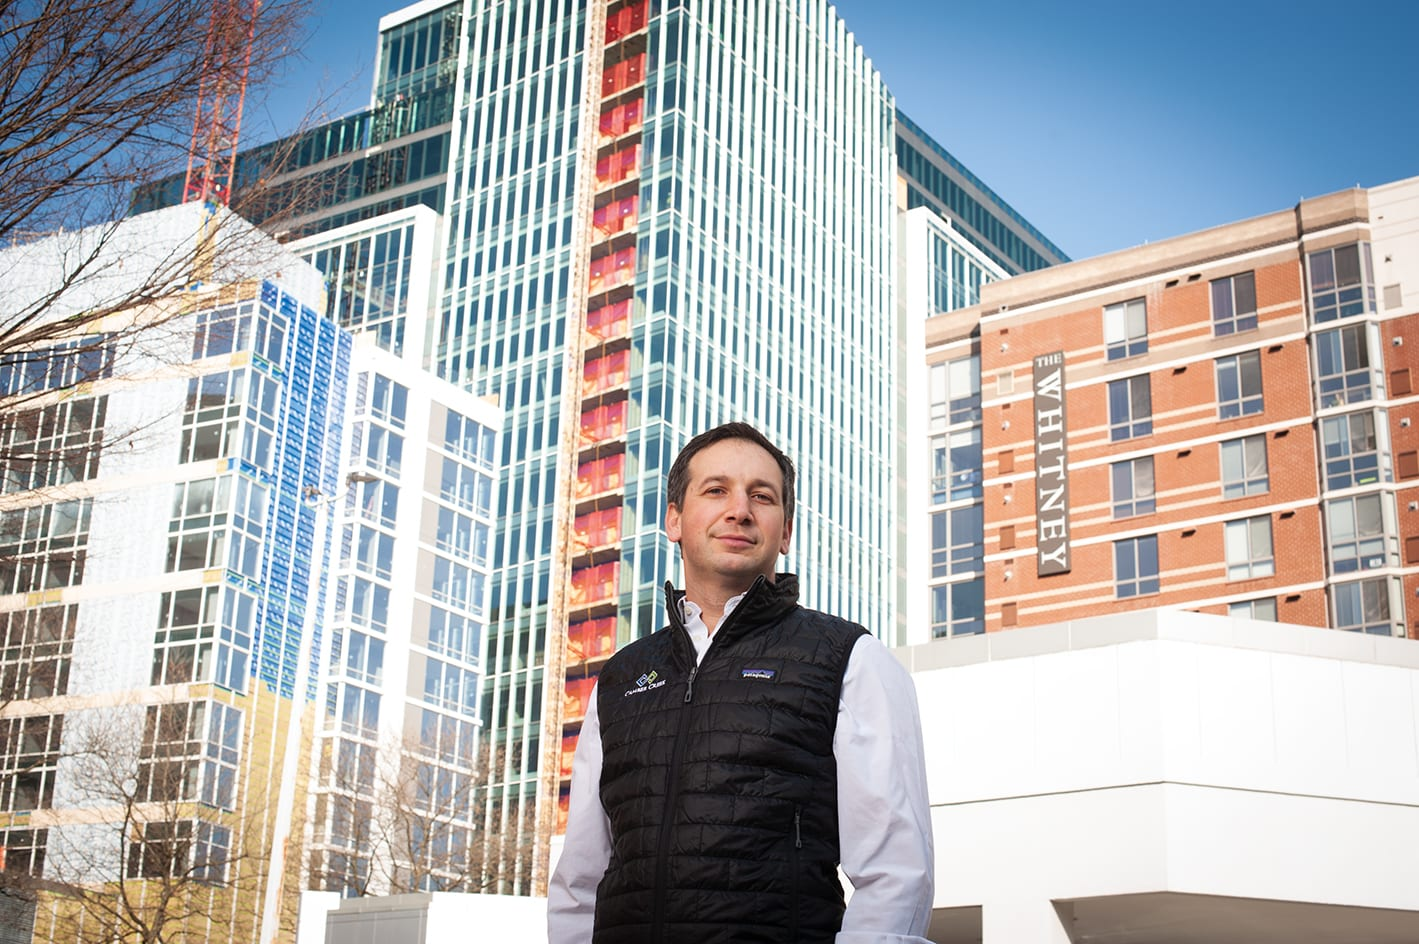 A man standing outside with buildings in the background.